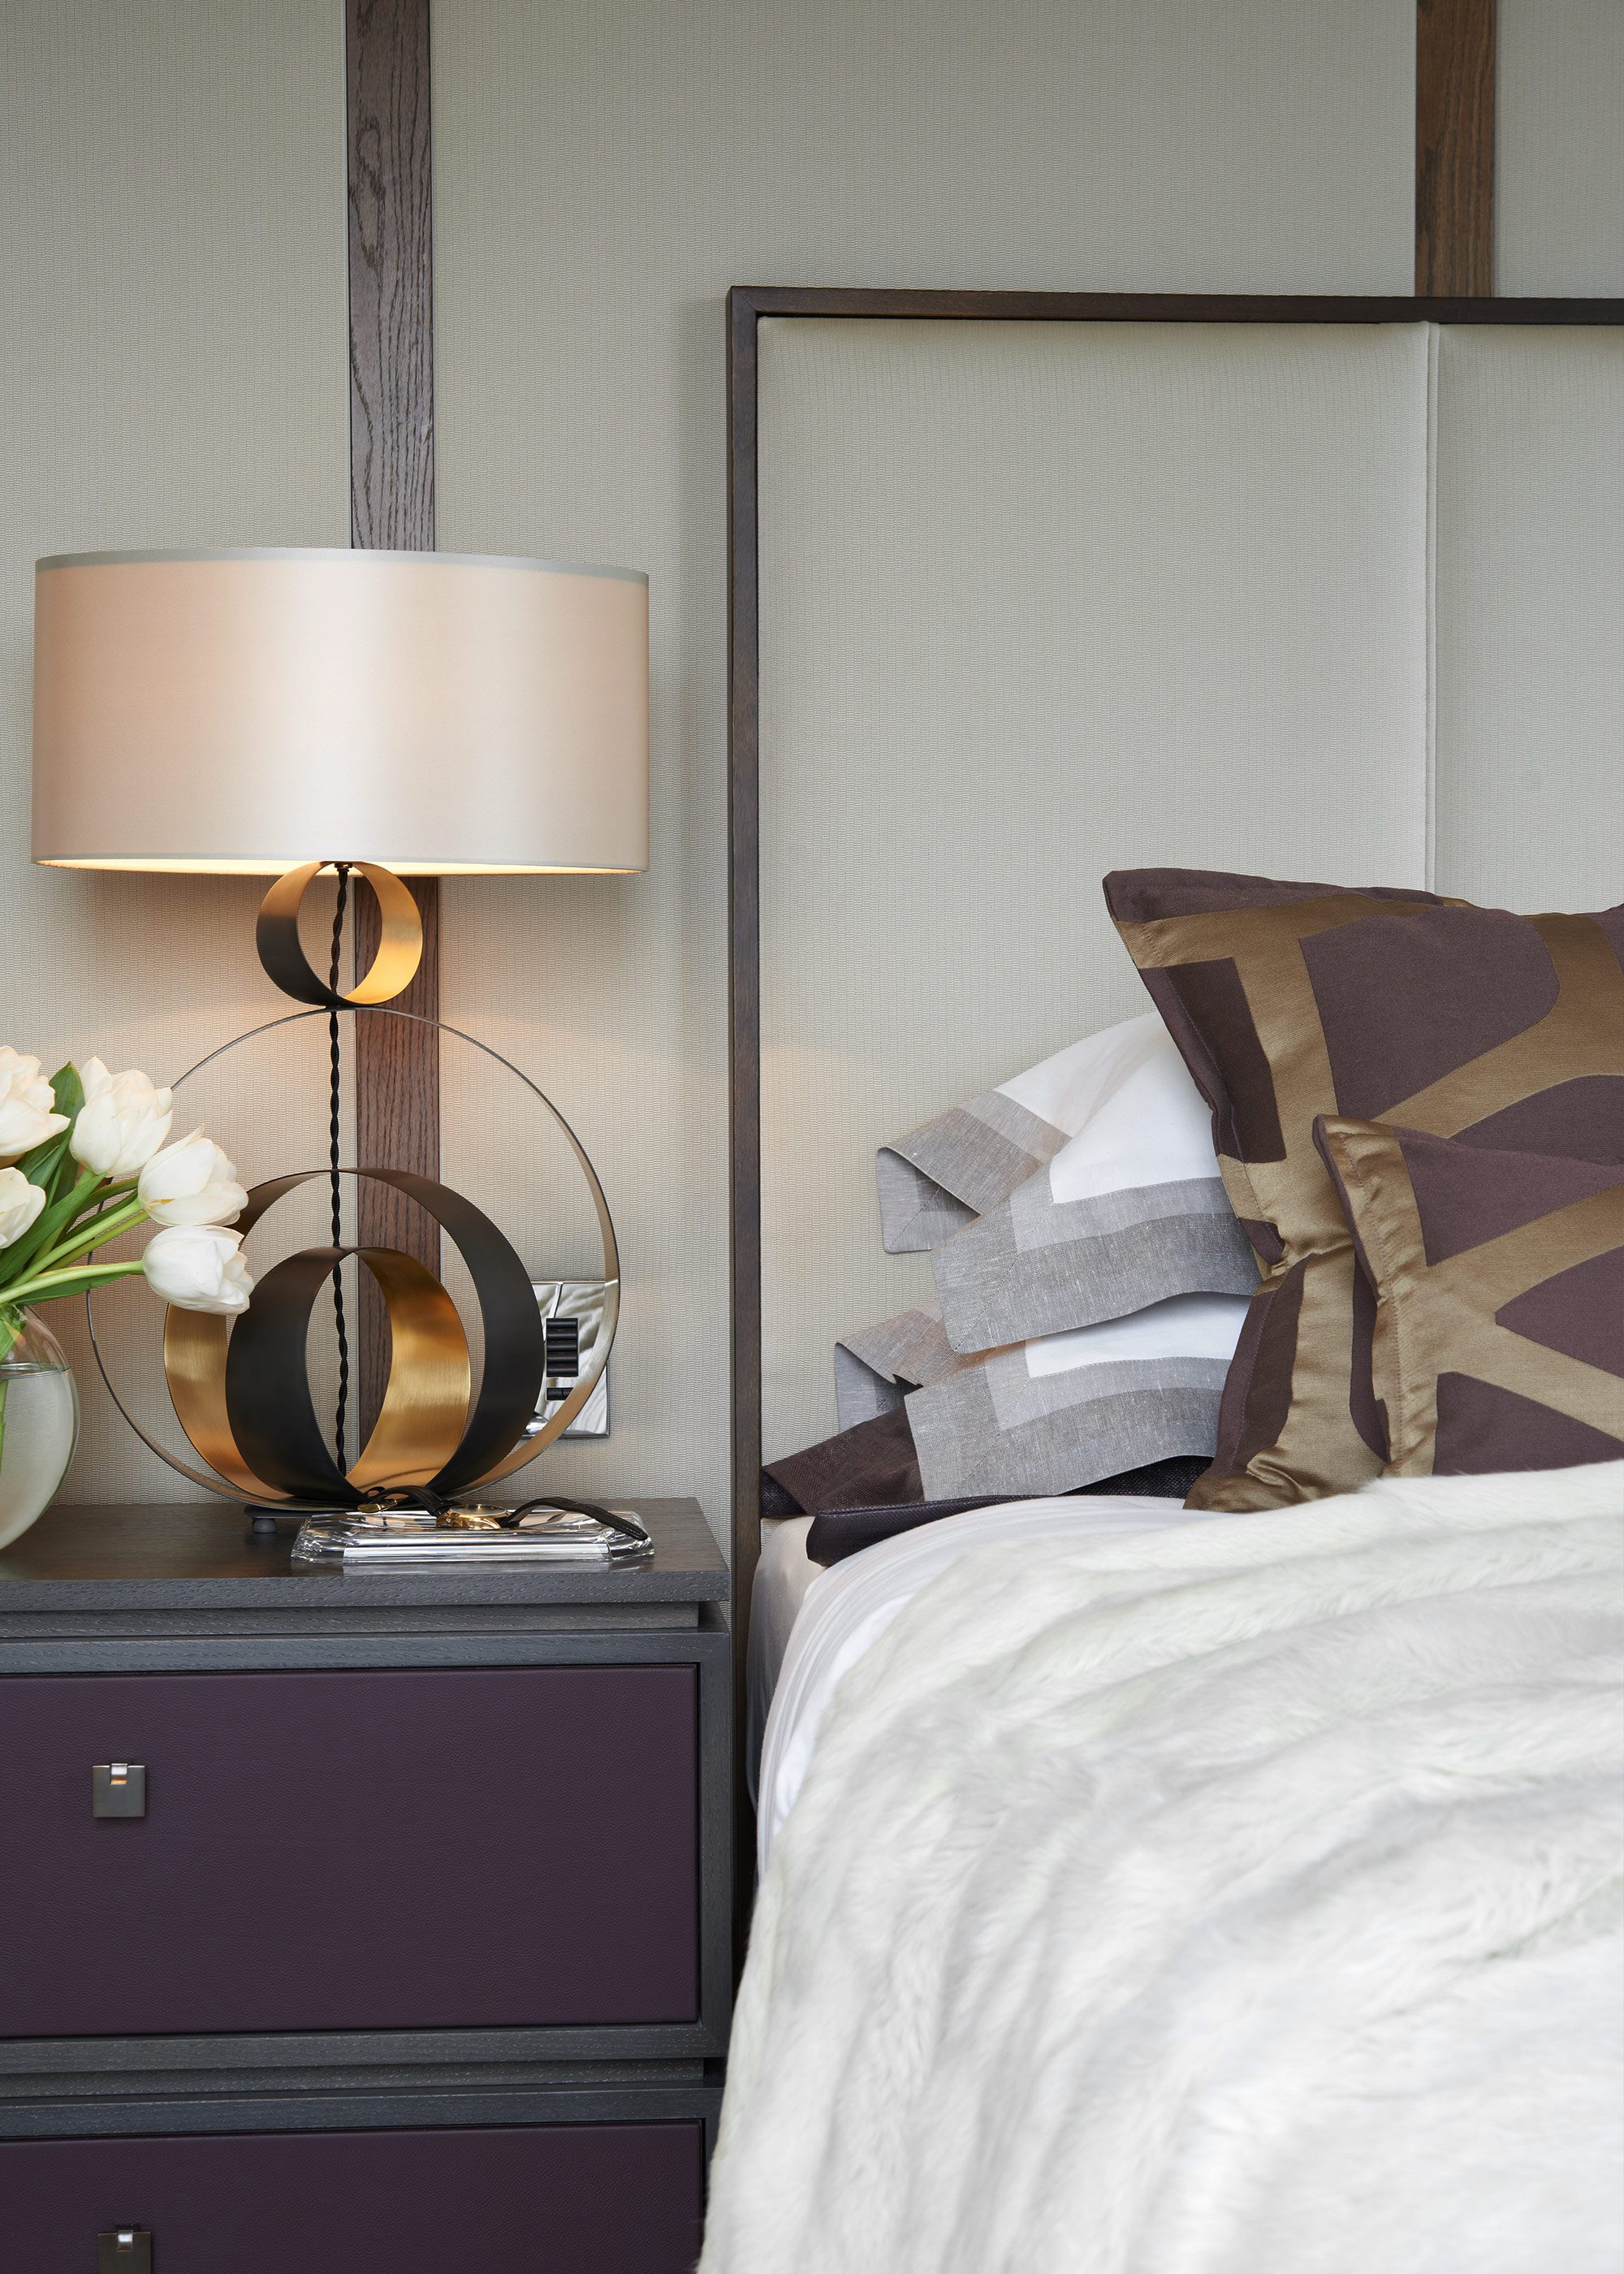 Honky Interior Design Trafalgar Square London Bedroom Detail